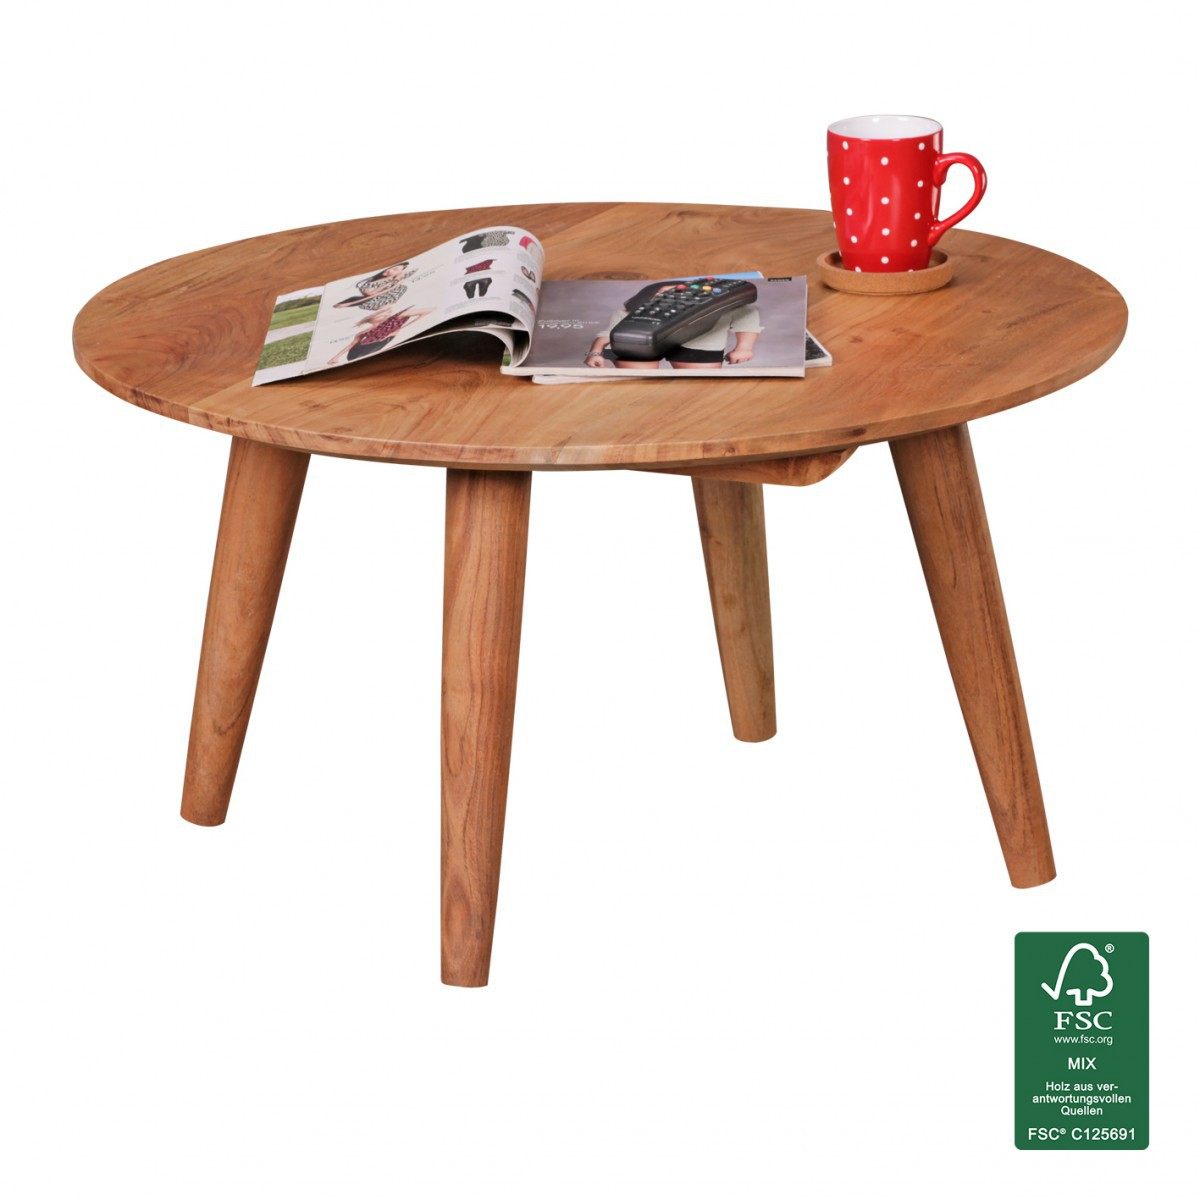 Finebuy table basse en bois massif acacia table basse for Table ronde sejour